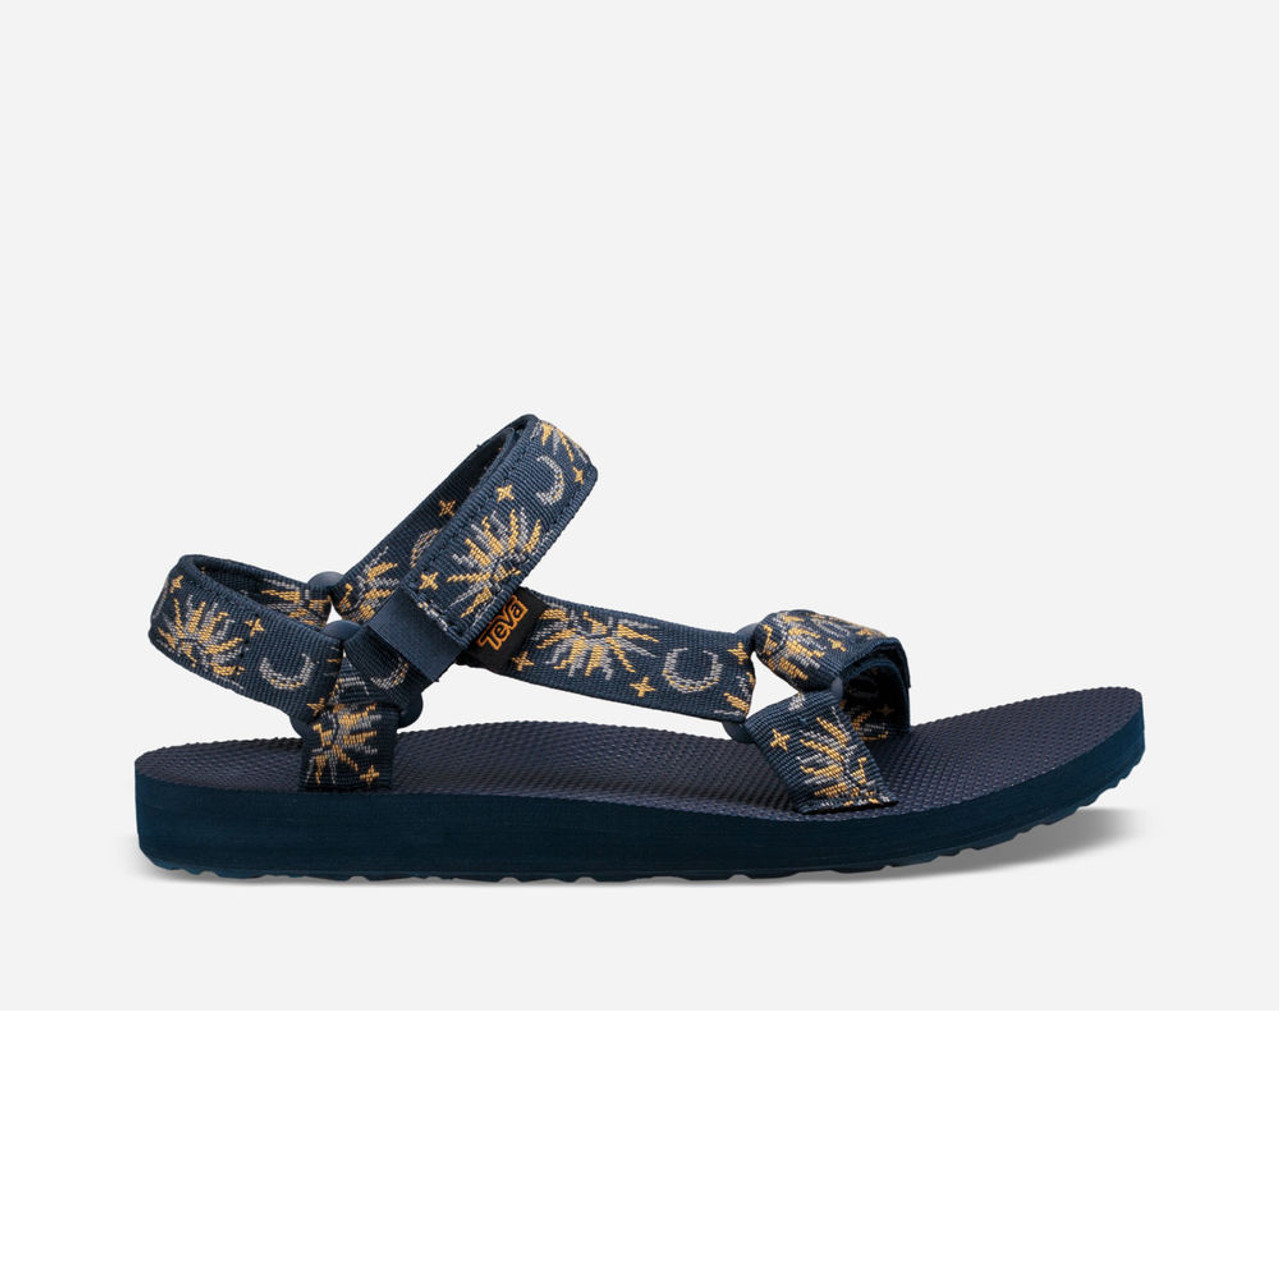 f6a39134fc29 Teva Women s Original Universal Sandal Sun and Moon Insignia Blue - Shop  now   Shoolu.